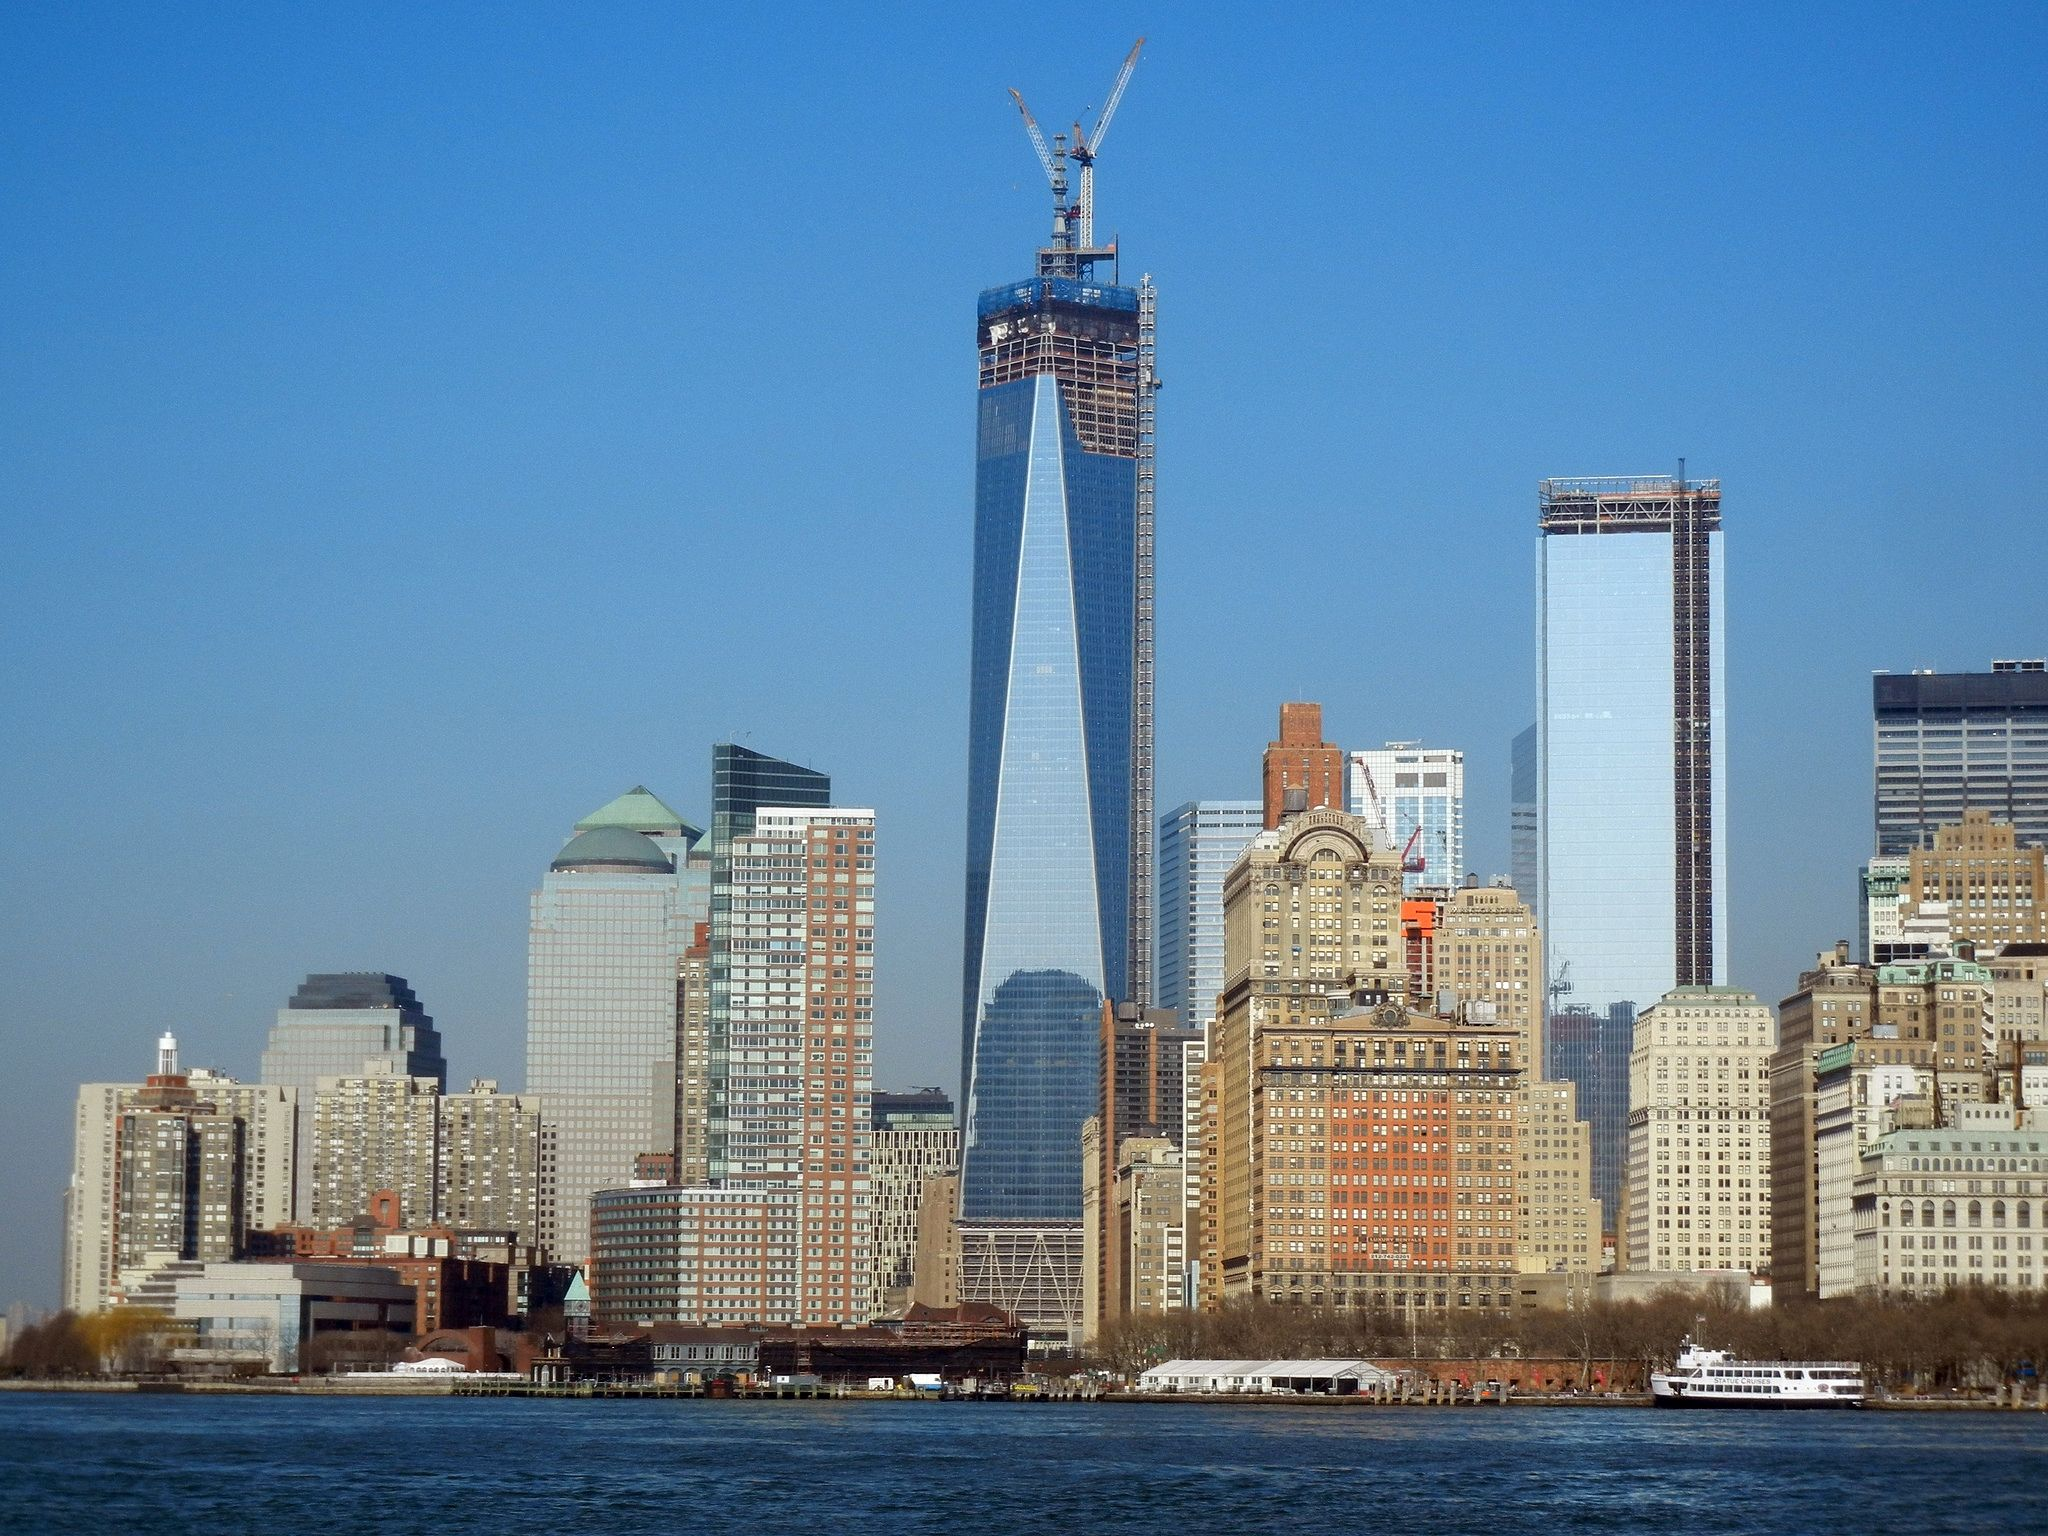 <p>The height of One World Trade Center has purpose. The tower, raised at the northwest corner of the 16-acre World Trade Center site, stretching upwards to 1,776 feet, representing the year of the United States Declaration of Independence. Completed in 2014—13 years after the devastation of Sept. 11, 2001—the Skidmore, Owings & Merrill-designed skyscraper reaches 104 stories tall with puts it in the world's top six tallest, counting the pinnacle spire. Without the spire, the building stands 1,368 feet tall. In honor of the original World Trade Center towers, the base of the new tower measures the same as the old towers at 200 feet square.</p>